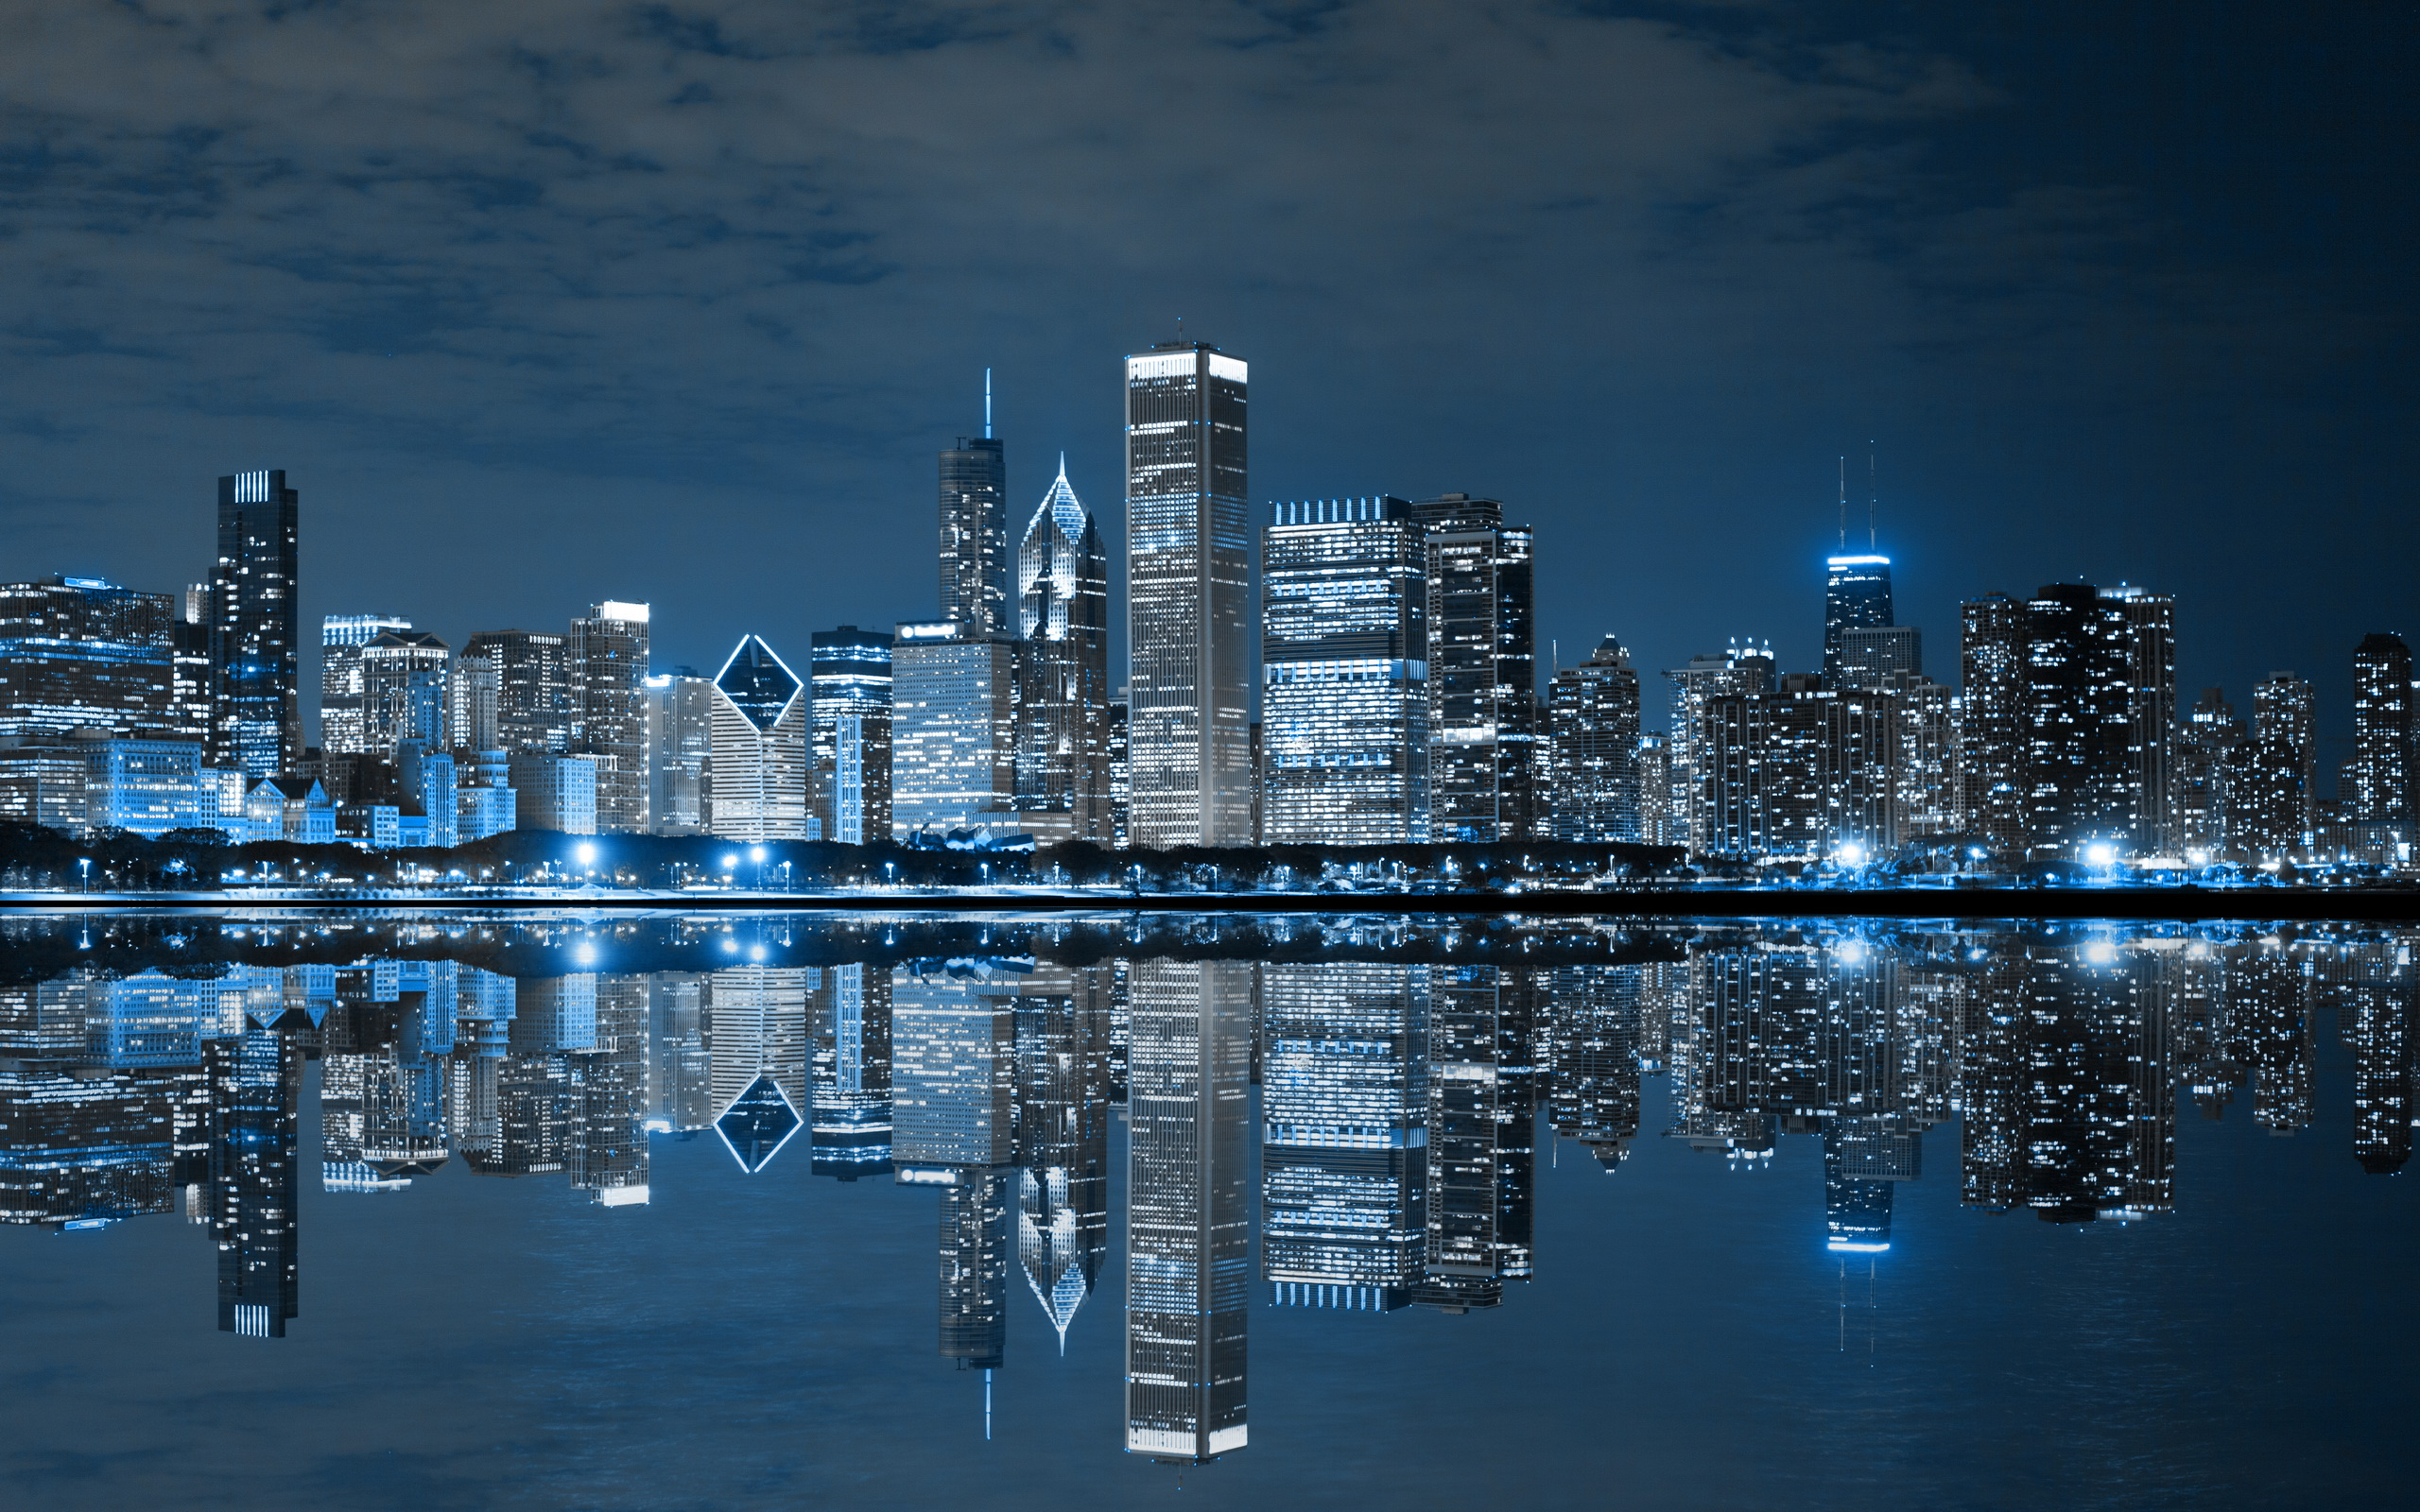 340 Chicago Hd Wallpapers Background Images Wallpaper Abyss